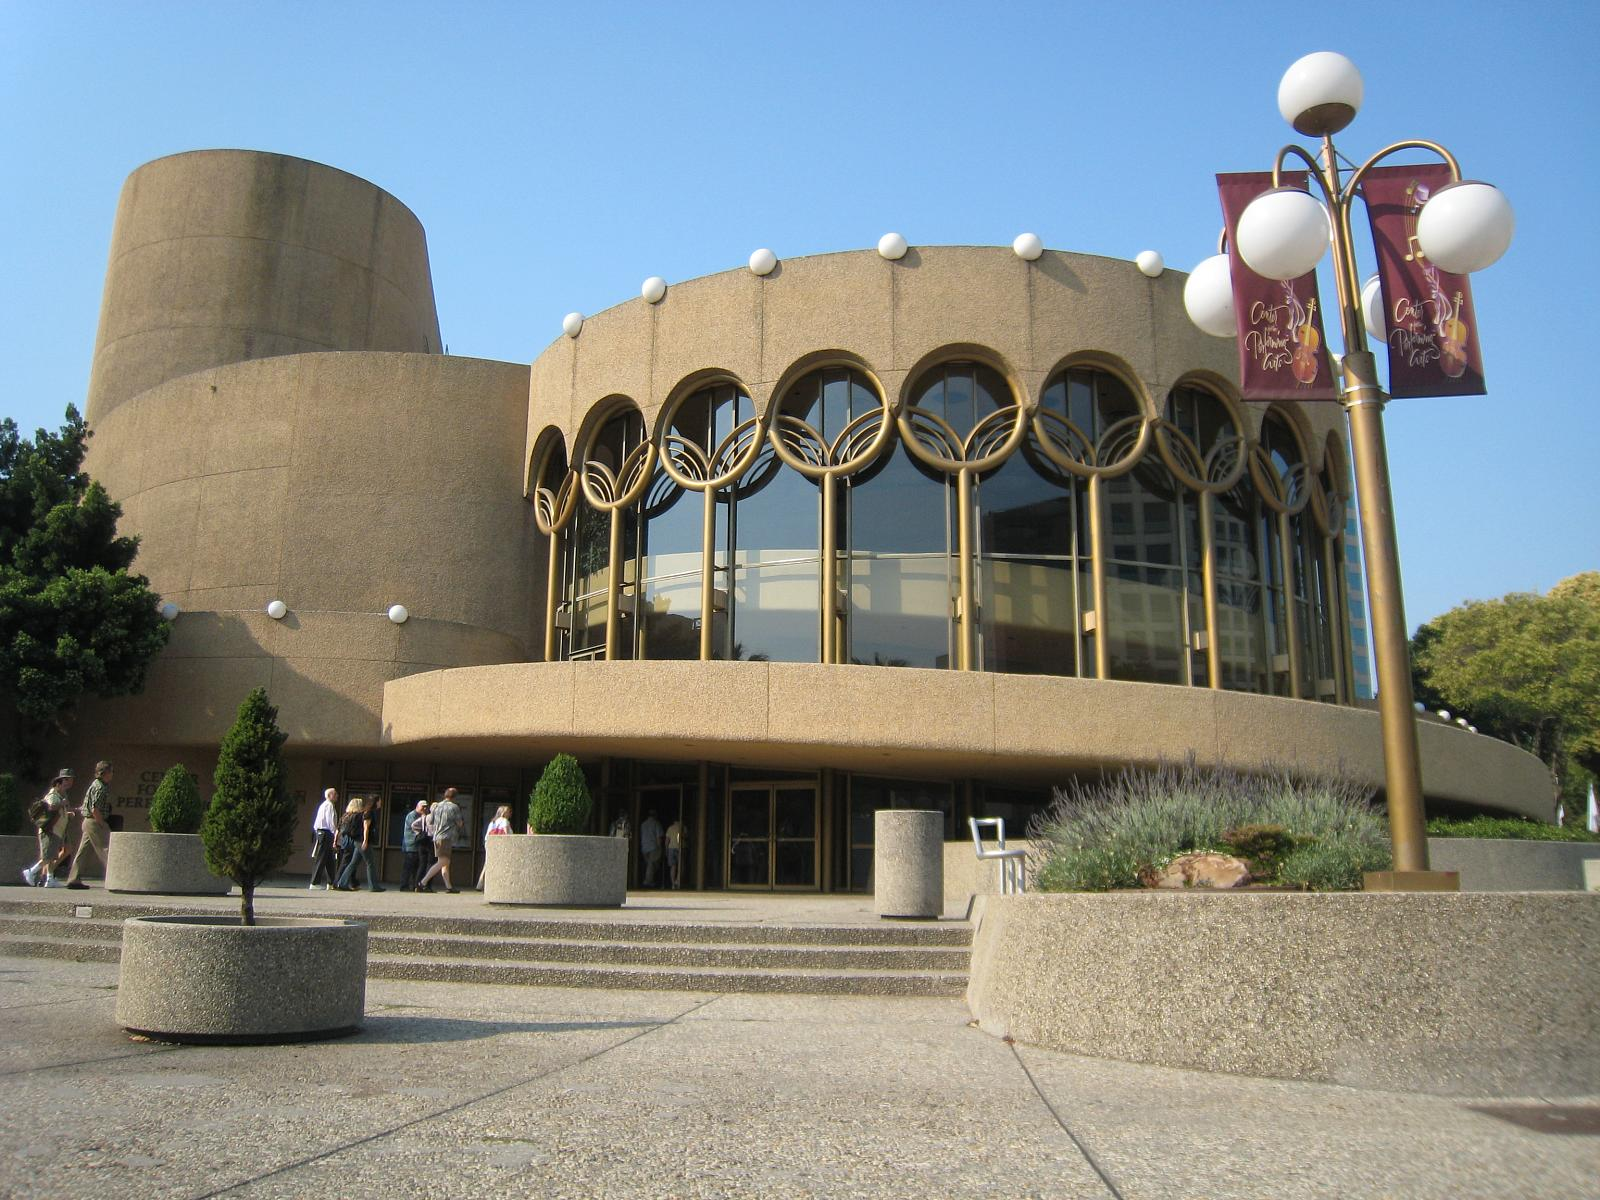 File:San Jose Center For The Performing Arts (San Jose Community Theater),